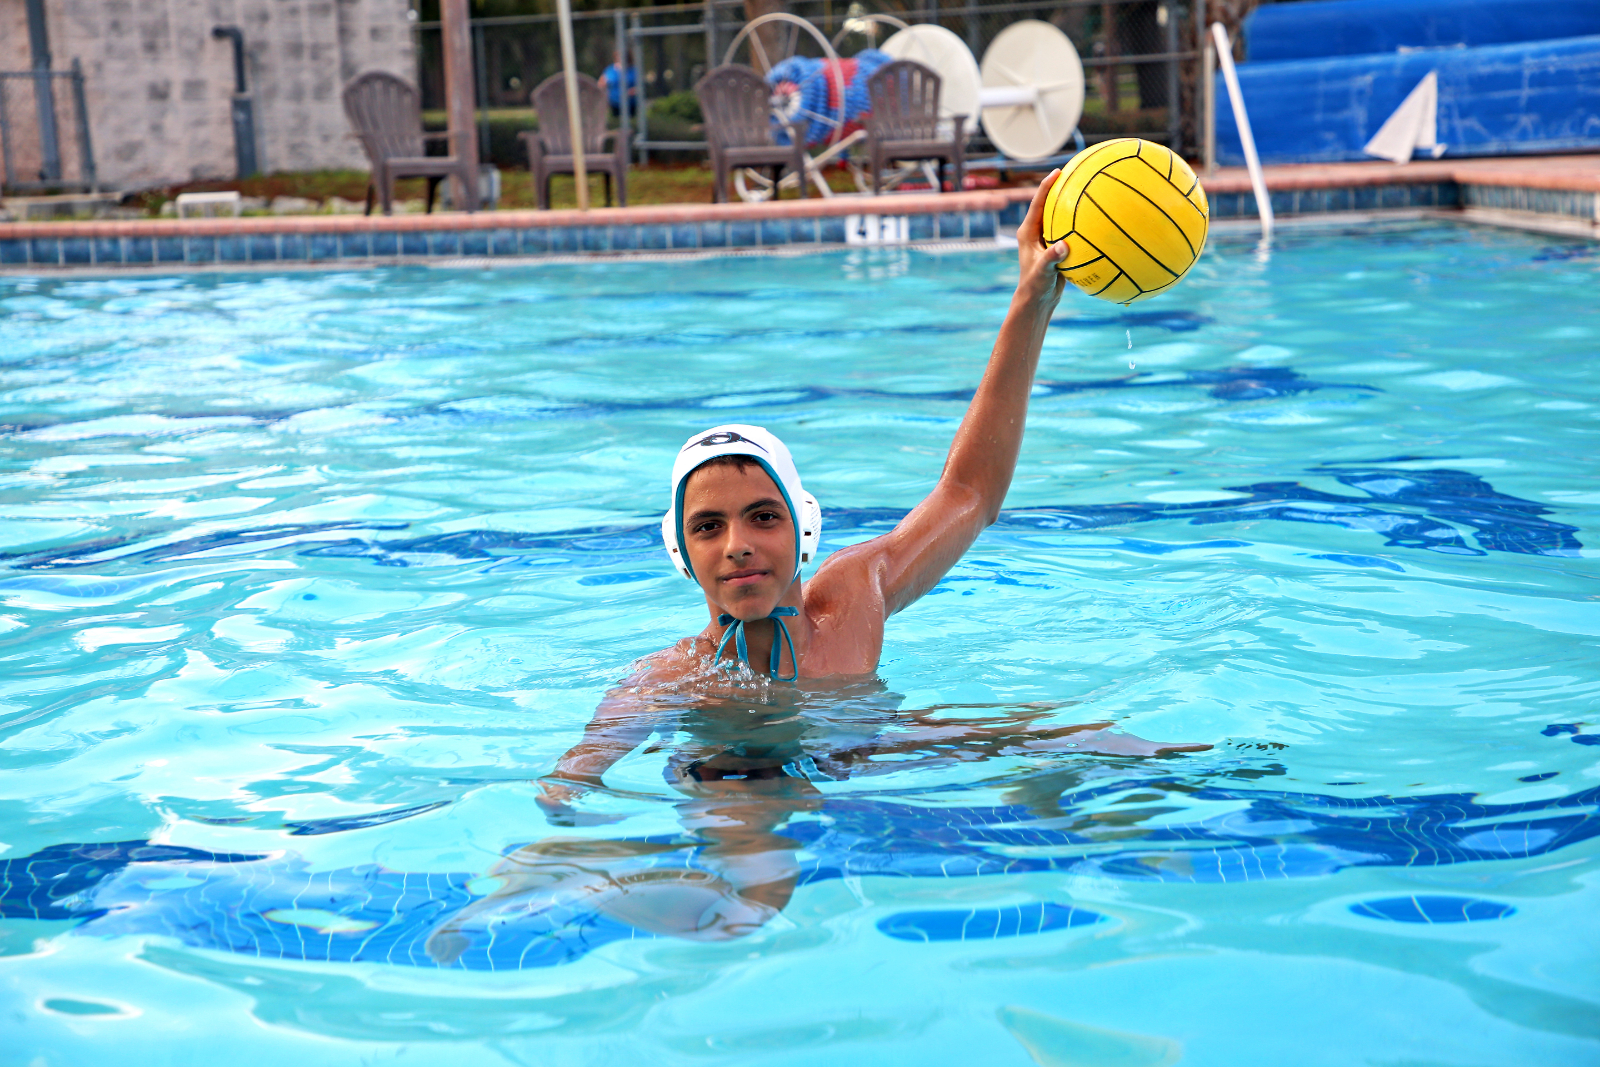 Sophomore Water Polo Athlete Zeyad Abdelmaged Featured on News 13